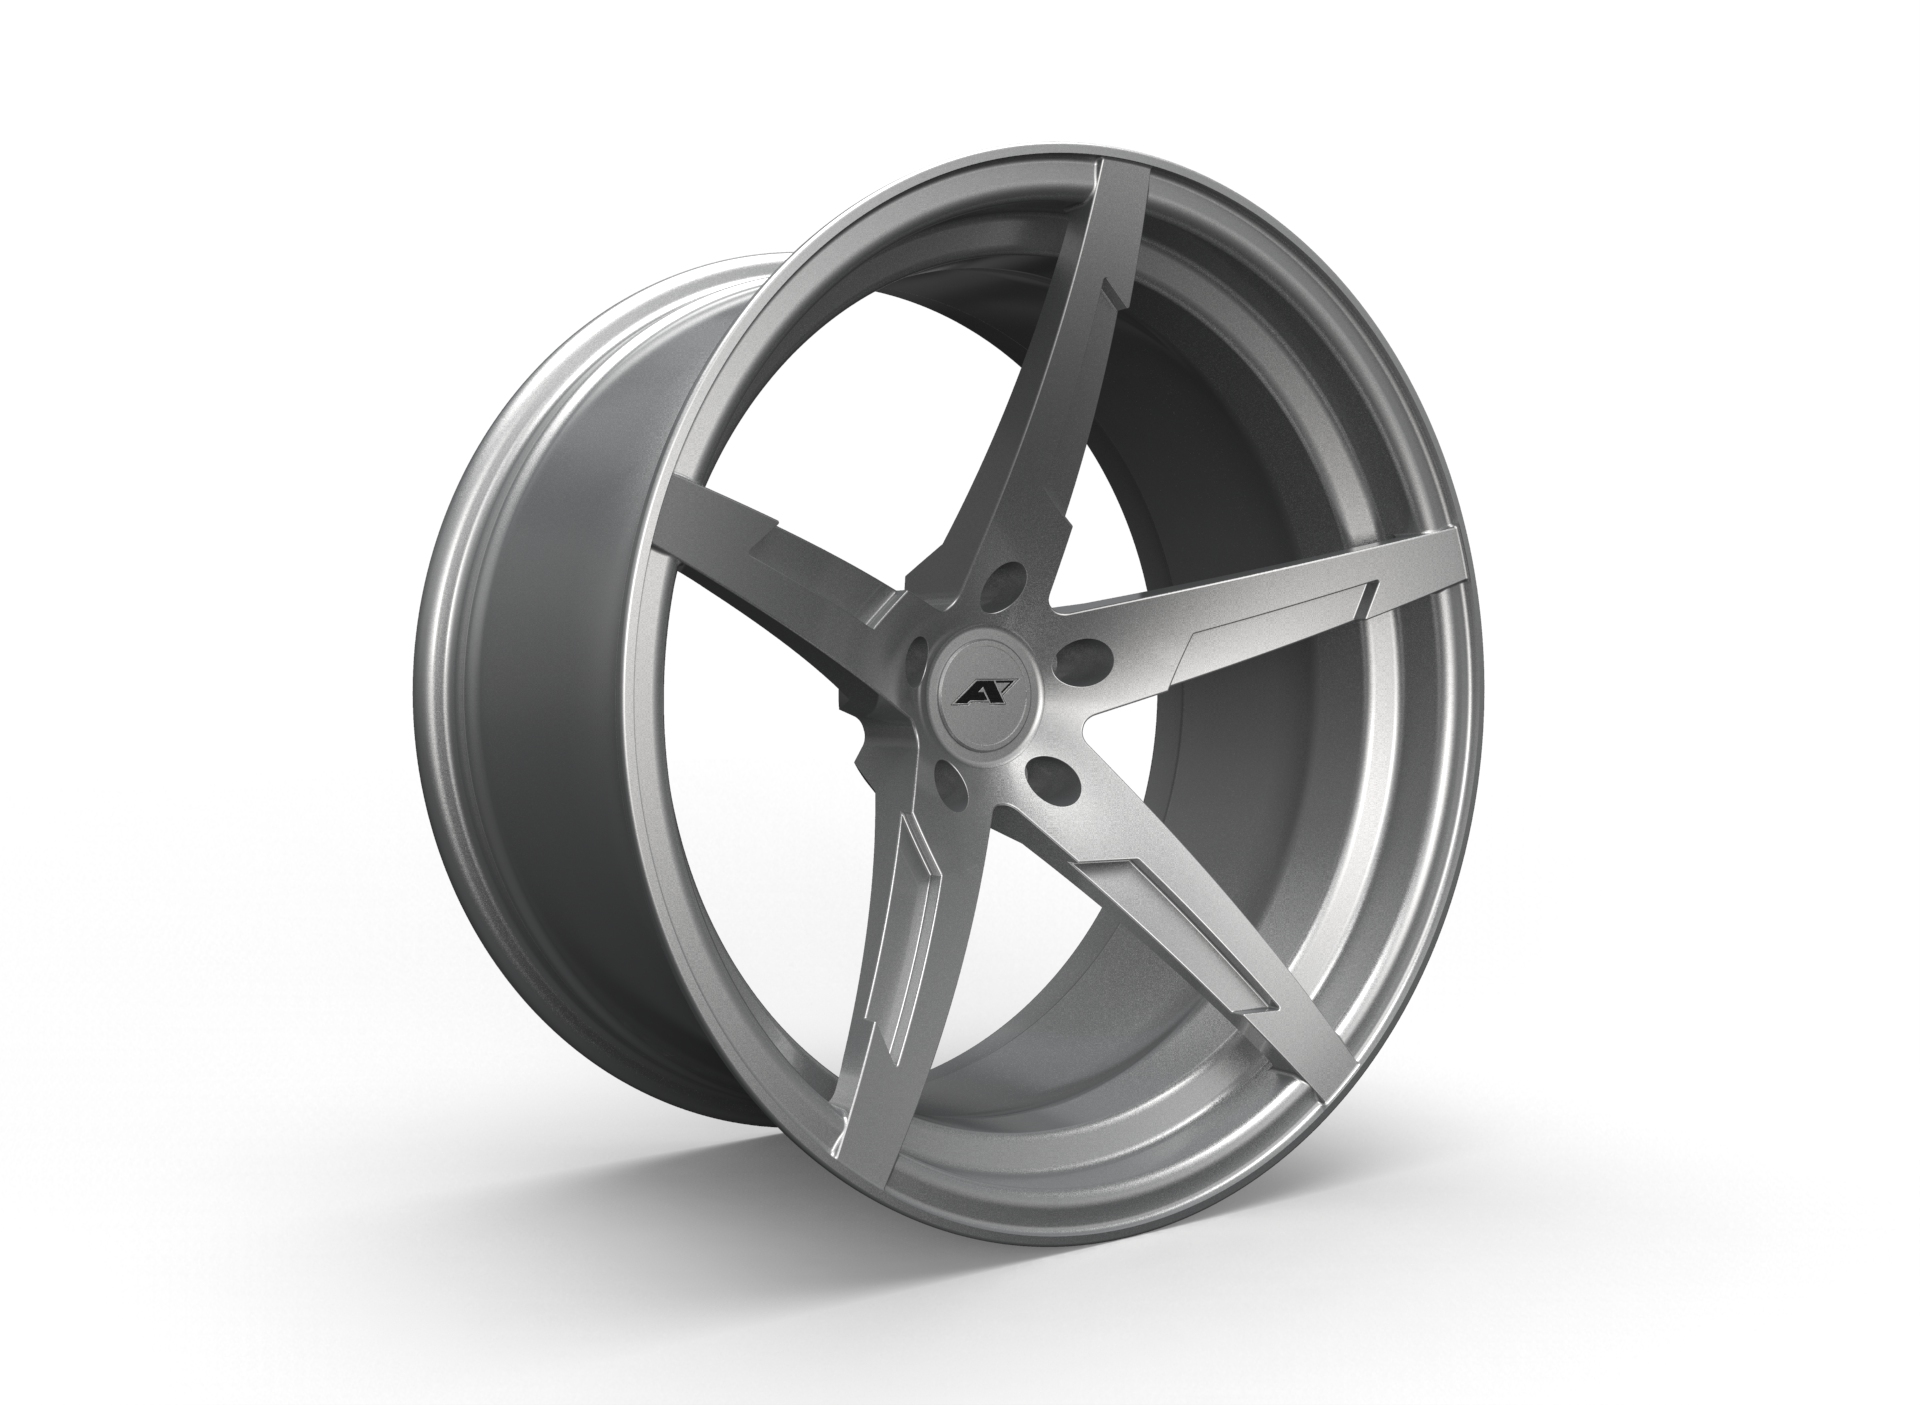 alphamale_wheels_4.93.jpg